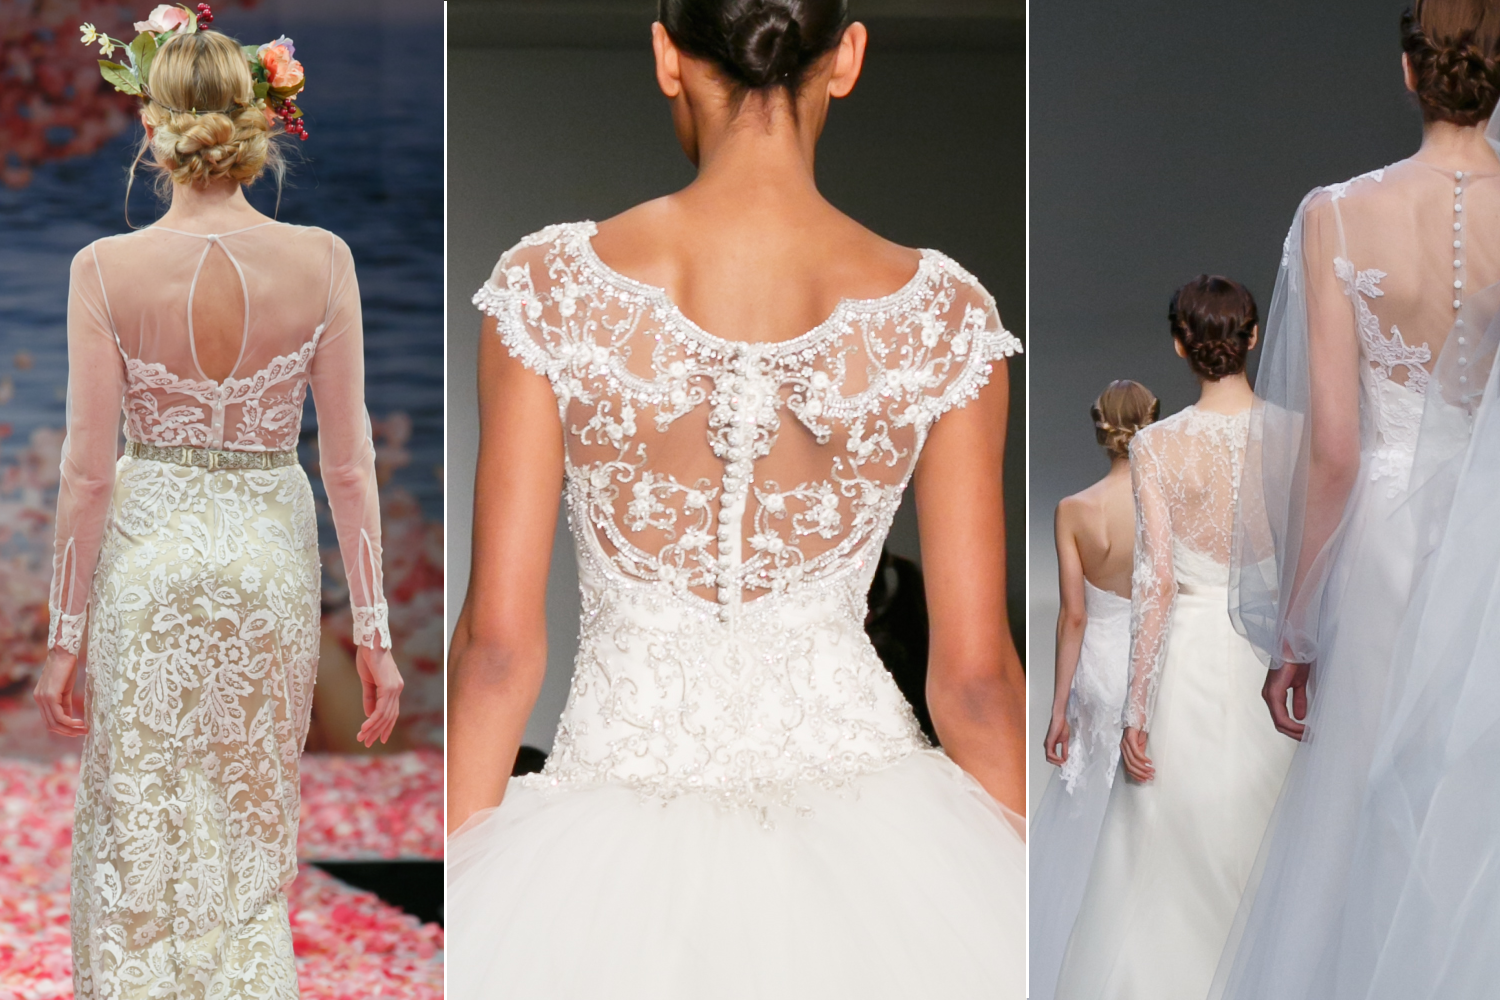 Wedding-dress-trends-for-fall-2013-statement-backs-2.original